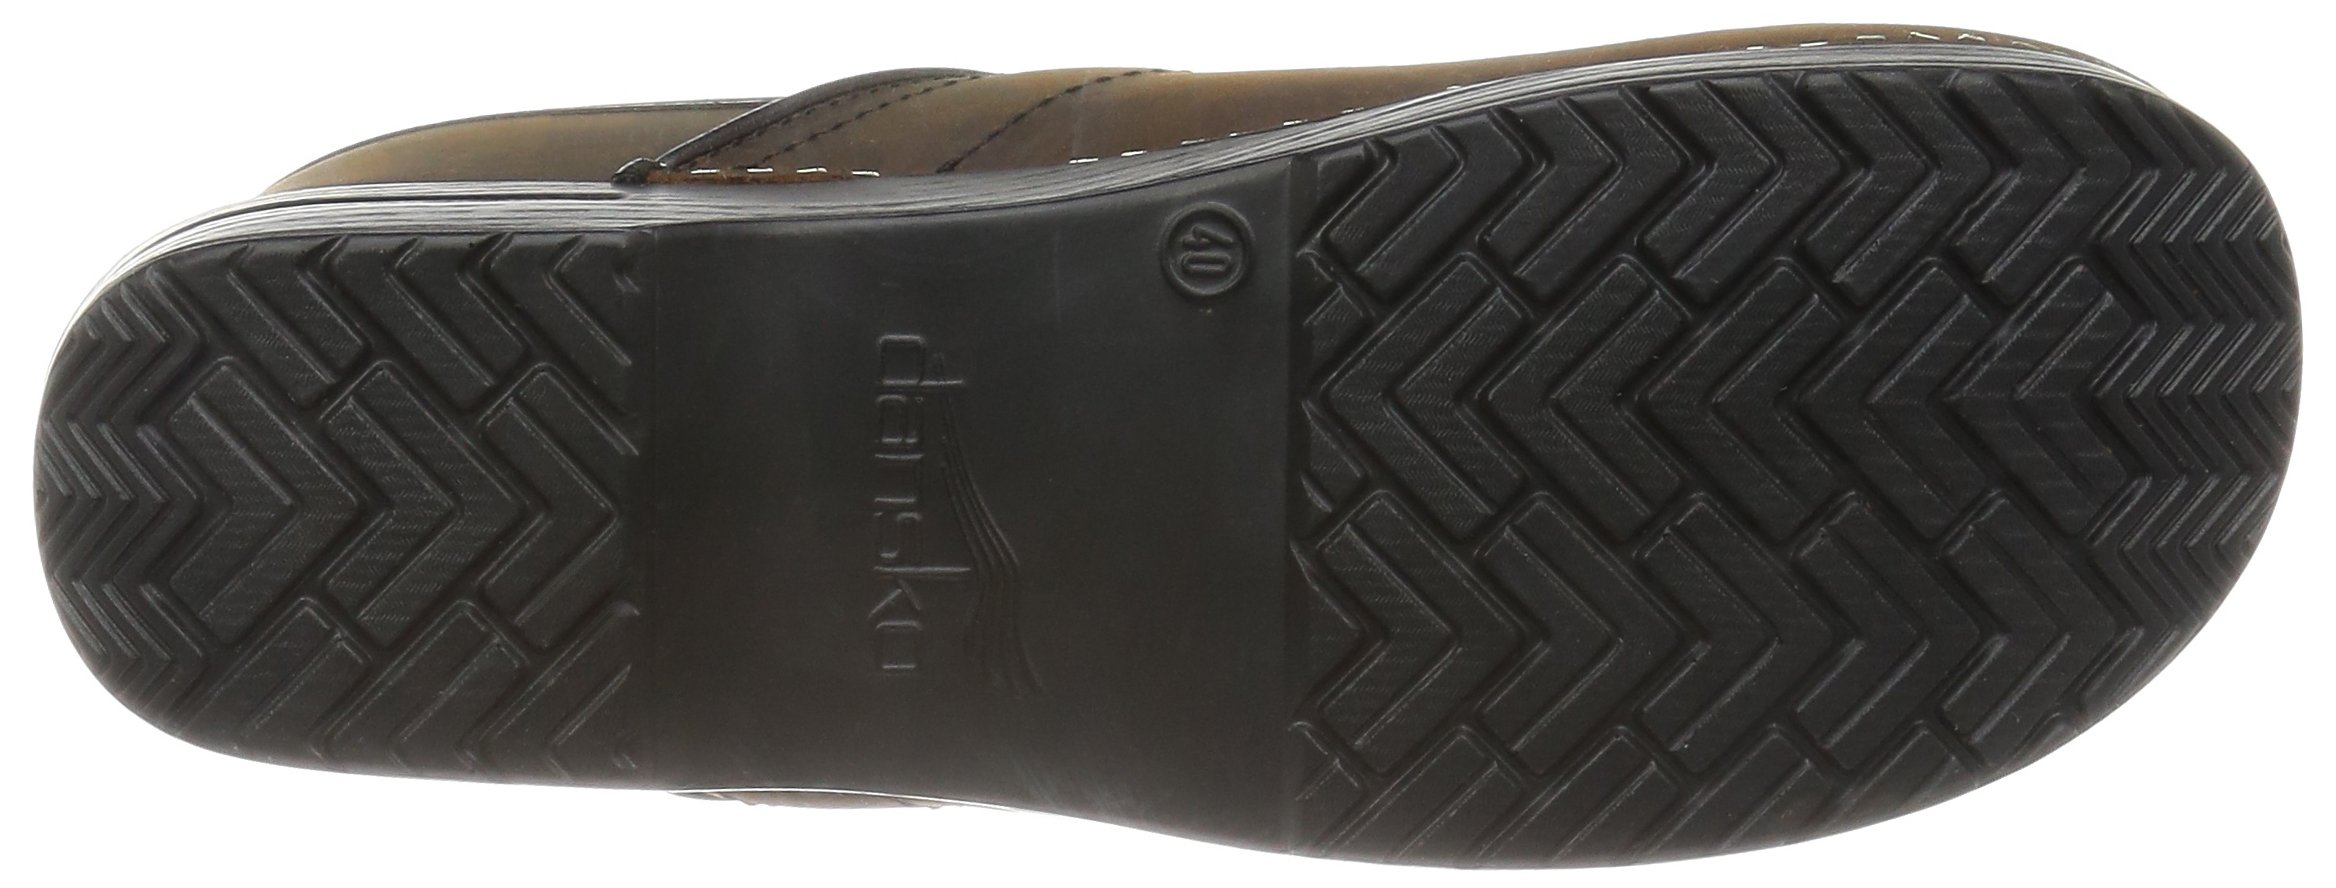 Dansko Women's Professional Oiled Leather Clog,Antique Brown/Black,35 EU / 4.5-5 B(M) US by Dansko (Image #3)